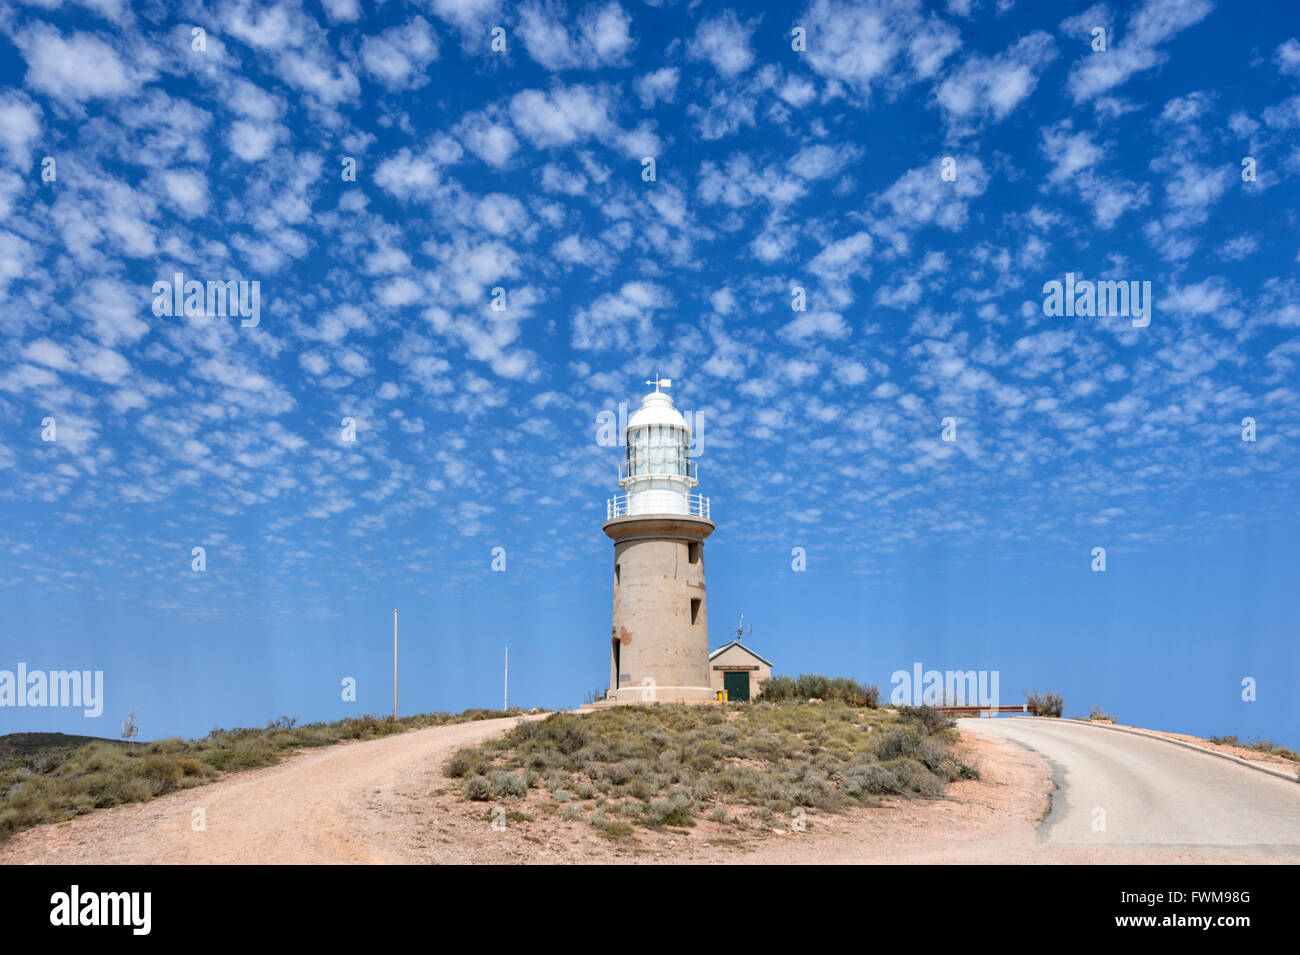 Vlaming Head Lighthouse, Exmouth, Western Australia, Australia Banque D'Images